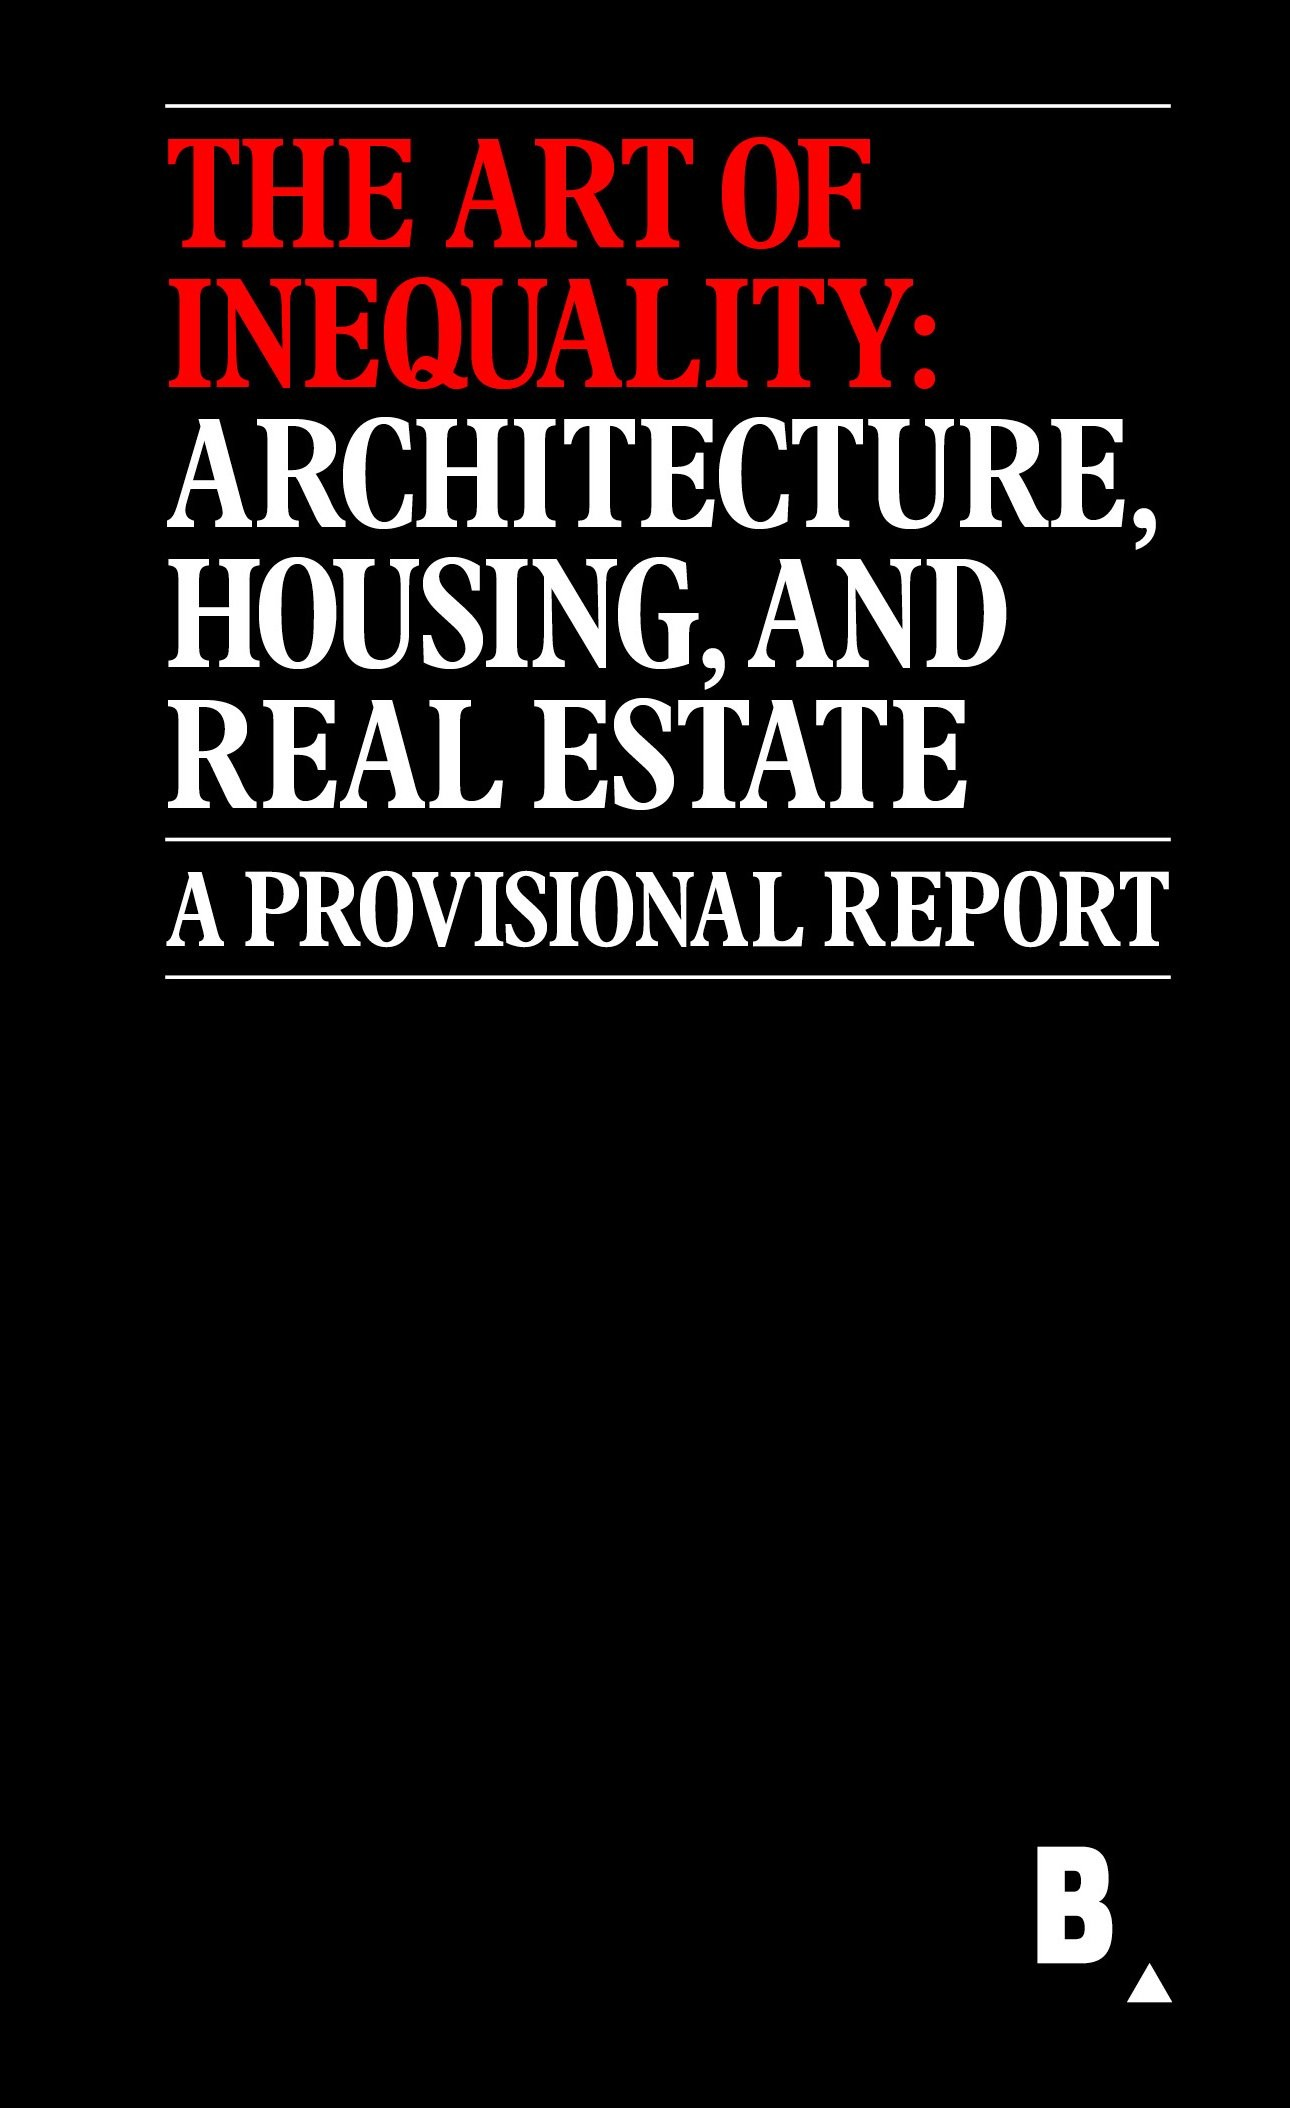 the_art_of_inequality_architecture_housing_real_estate_reinhold_martin_jacob_moore_susanne_schindler_temple_hoyne_buell_center_motto_distribution